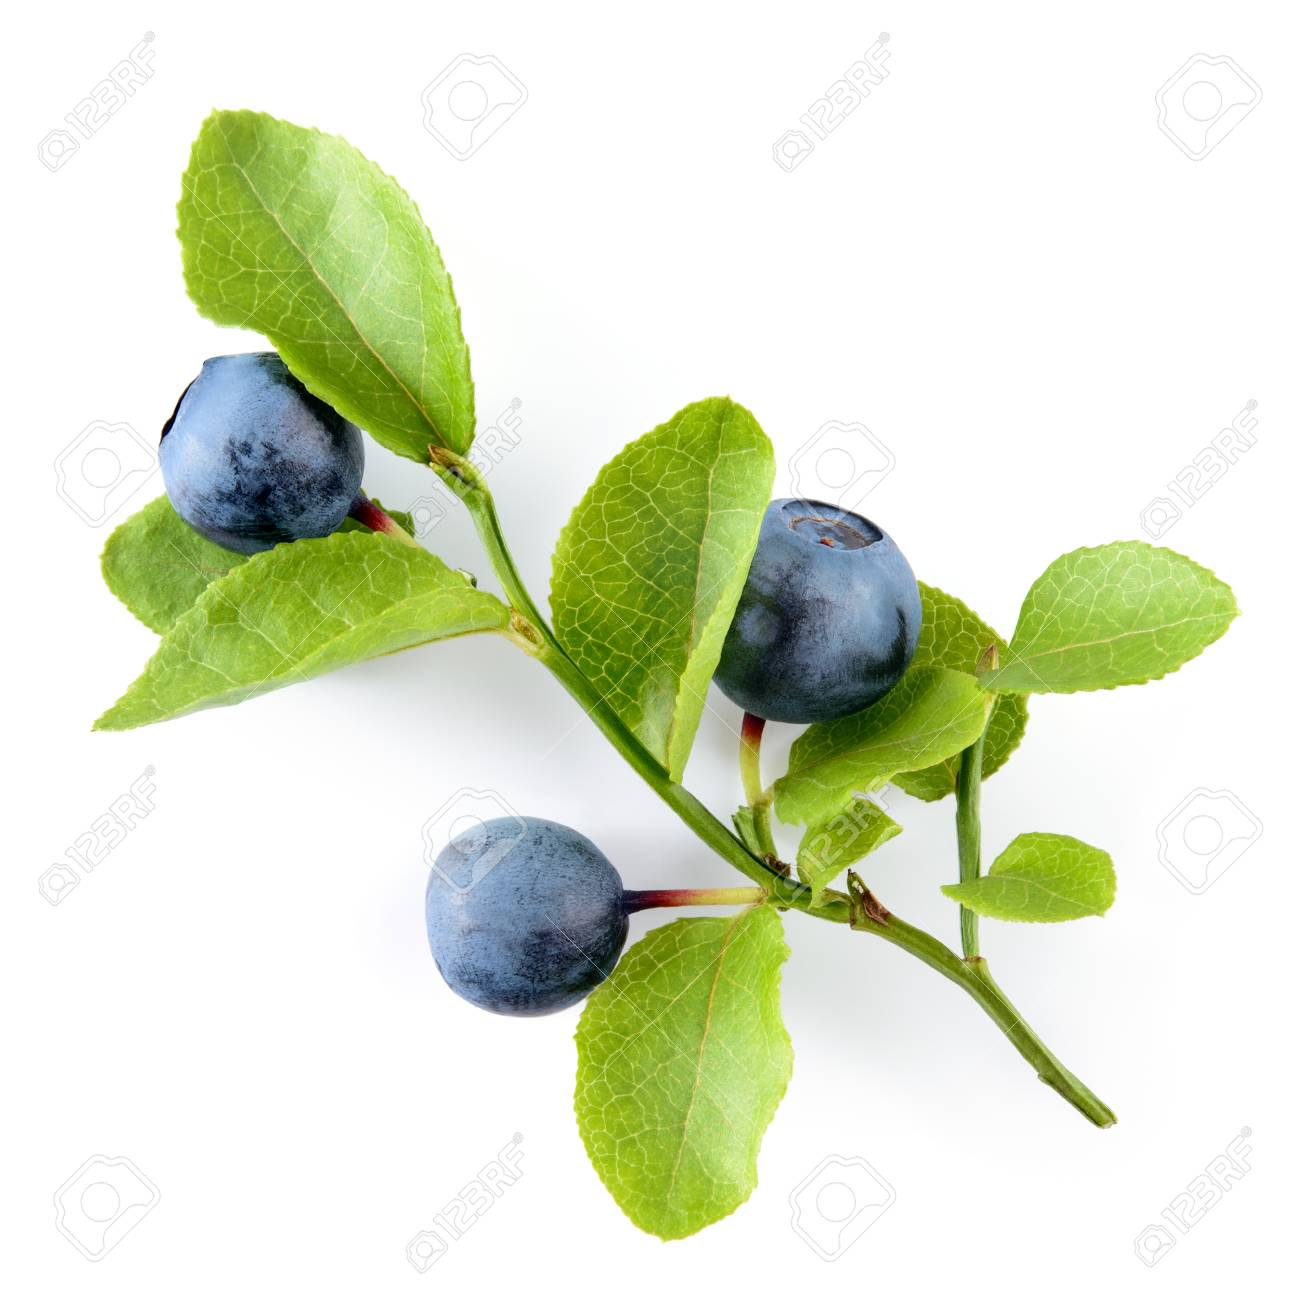 Blueberry. Branch with leaves isolated. Blueberries on white background - 94883192